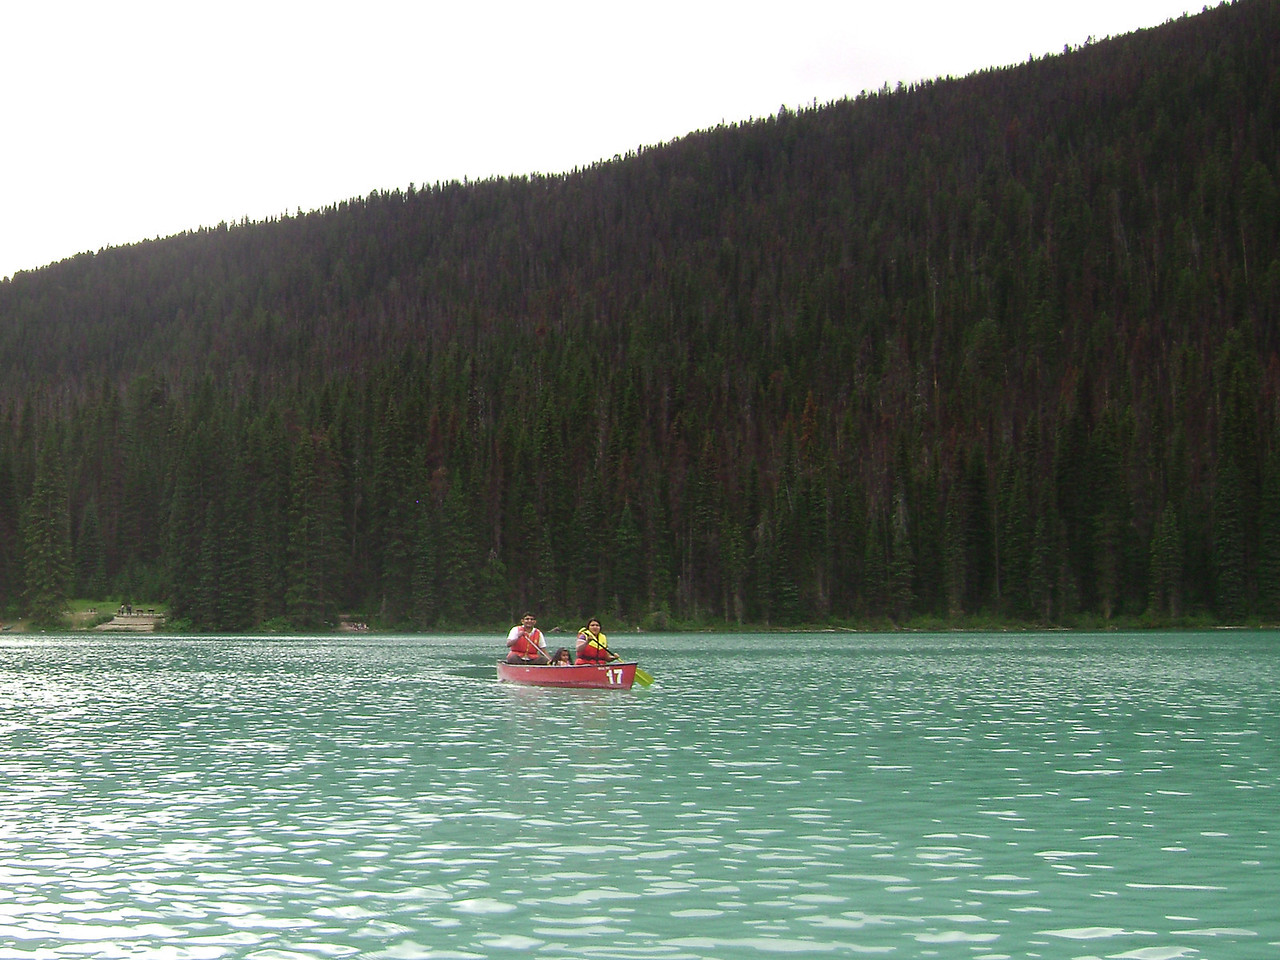 Boating at Emarald Lake, Yoho National Park